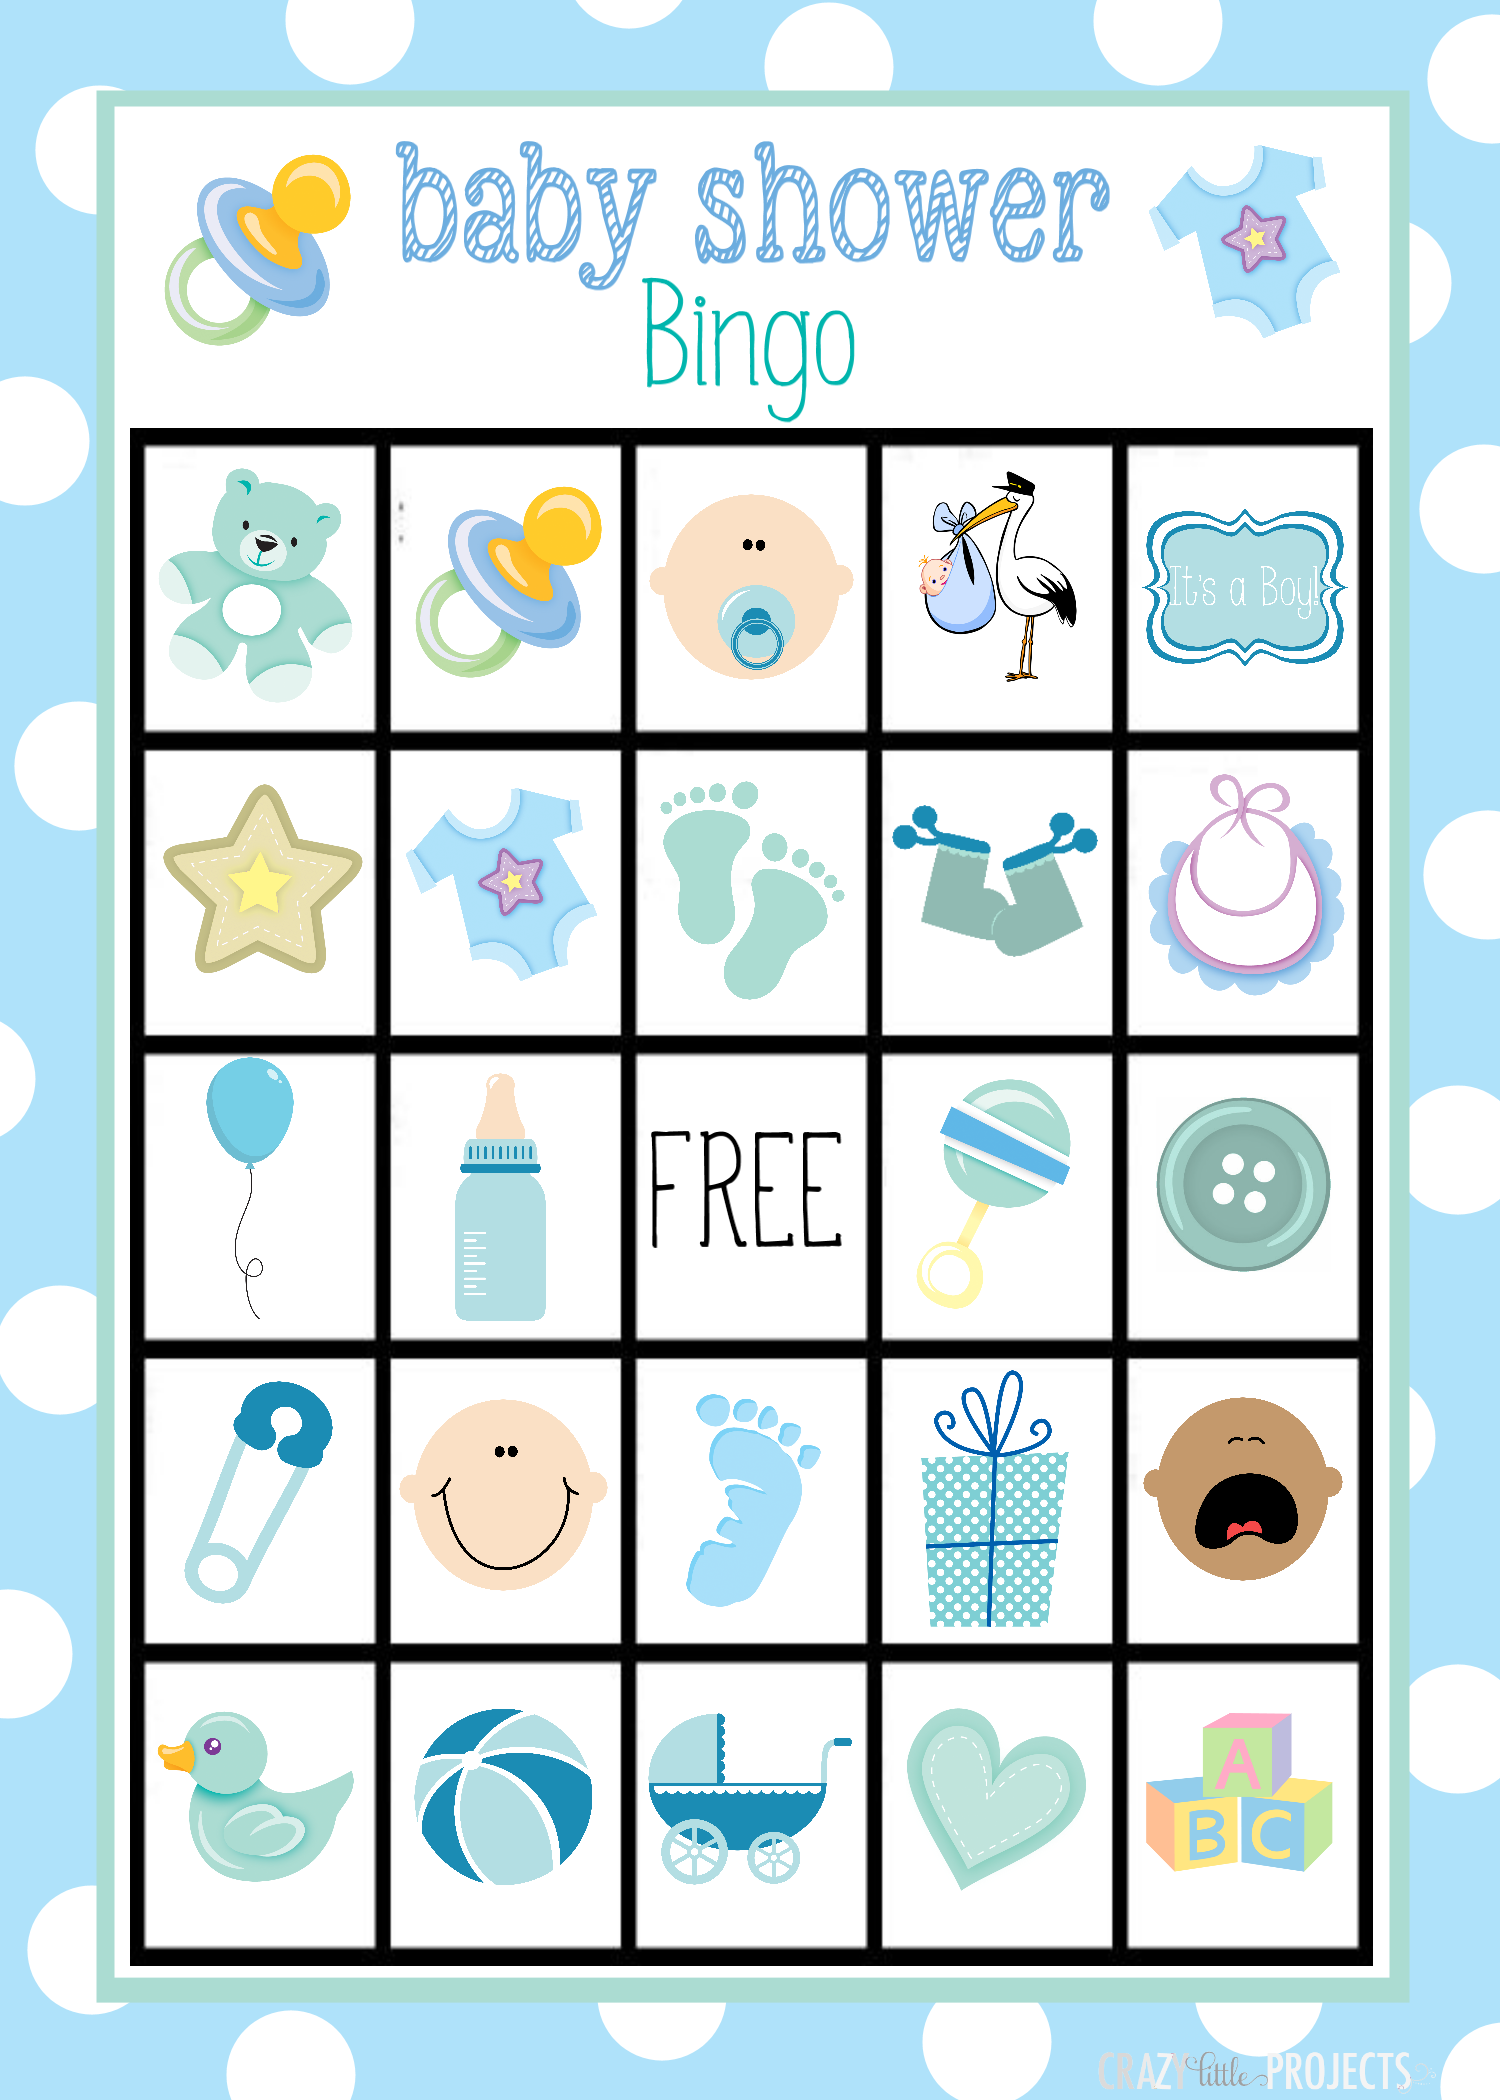 Imagenes para baby shower ni+-a clipart image free Printable Baby Shower Bingo Cards | Haleys baby shower ... image free